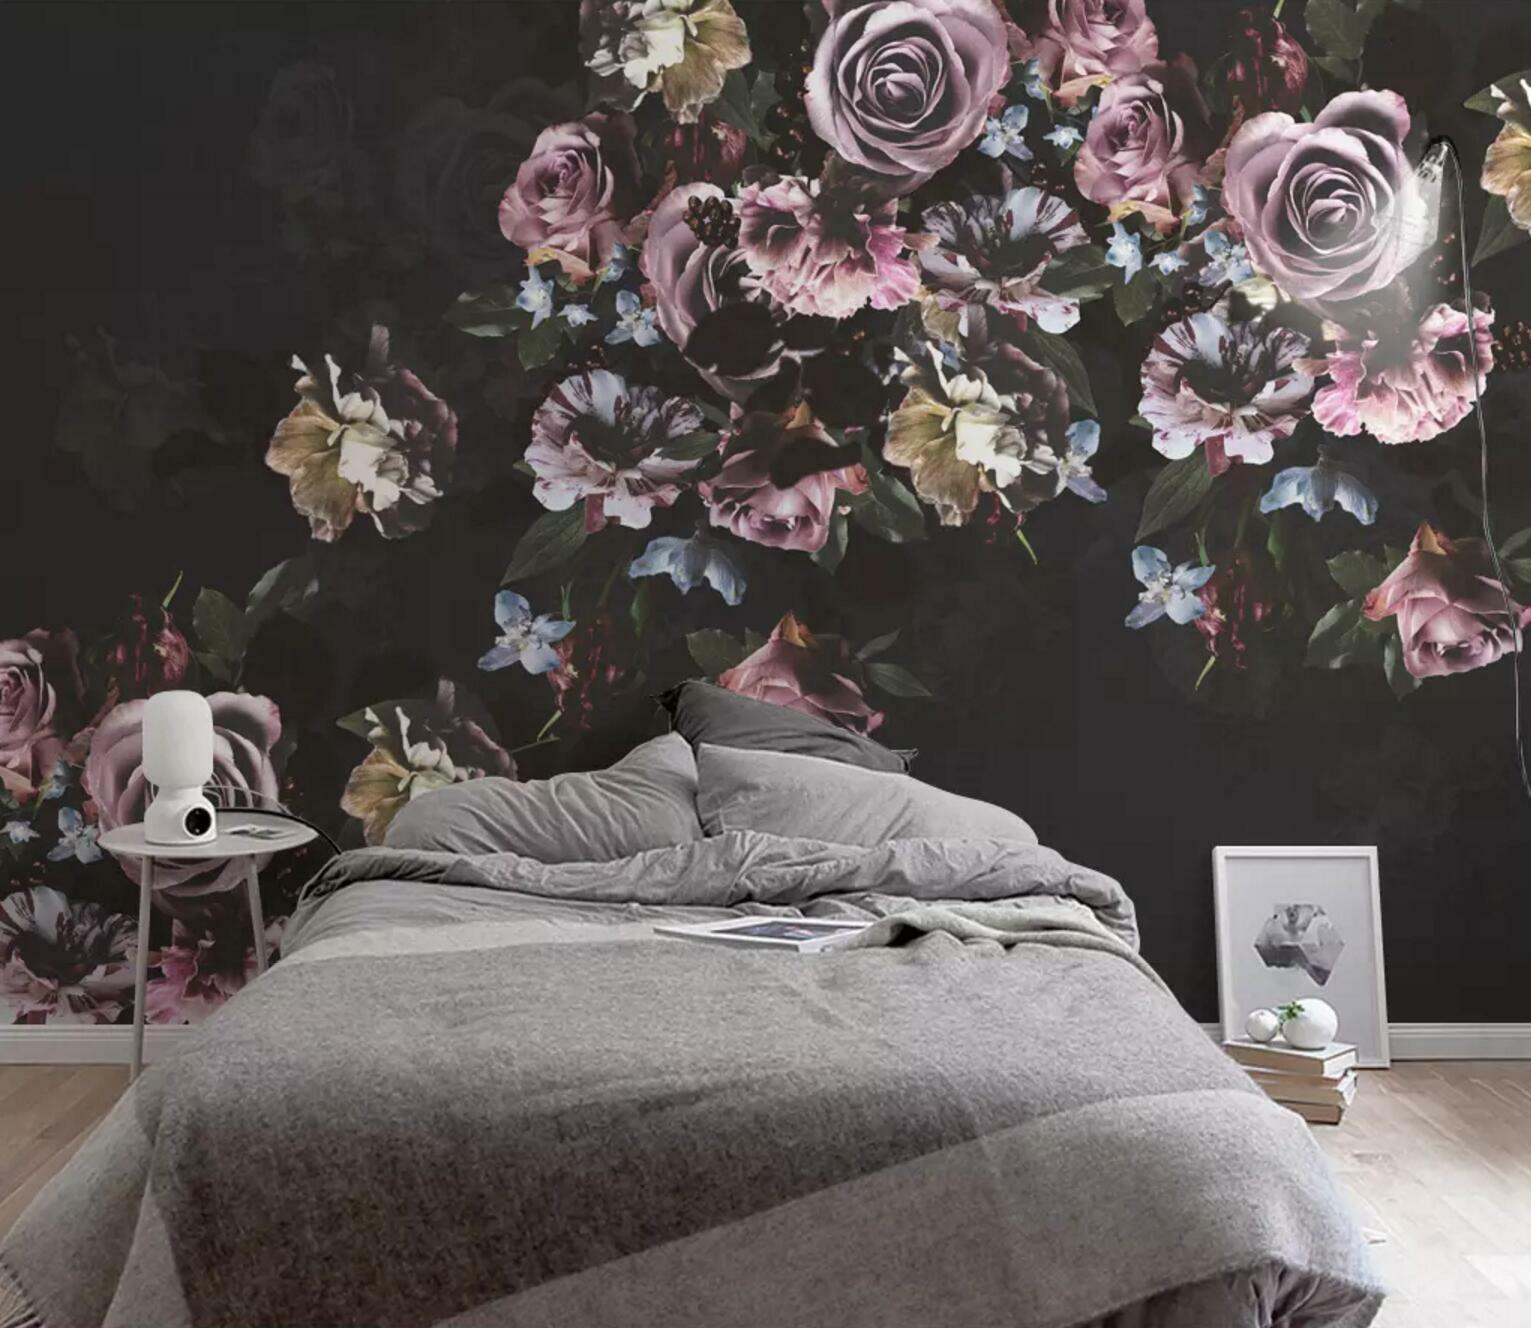 3D Flower Retro 740 Wall Paper Exclusive MXY Wallpaper Mural Decal Indoor Wall